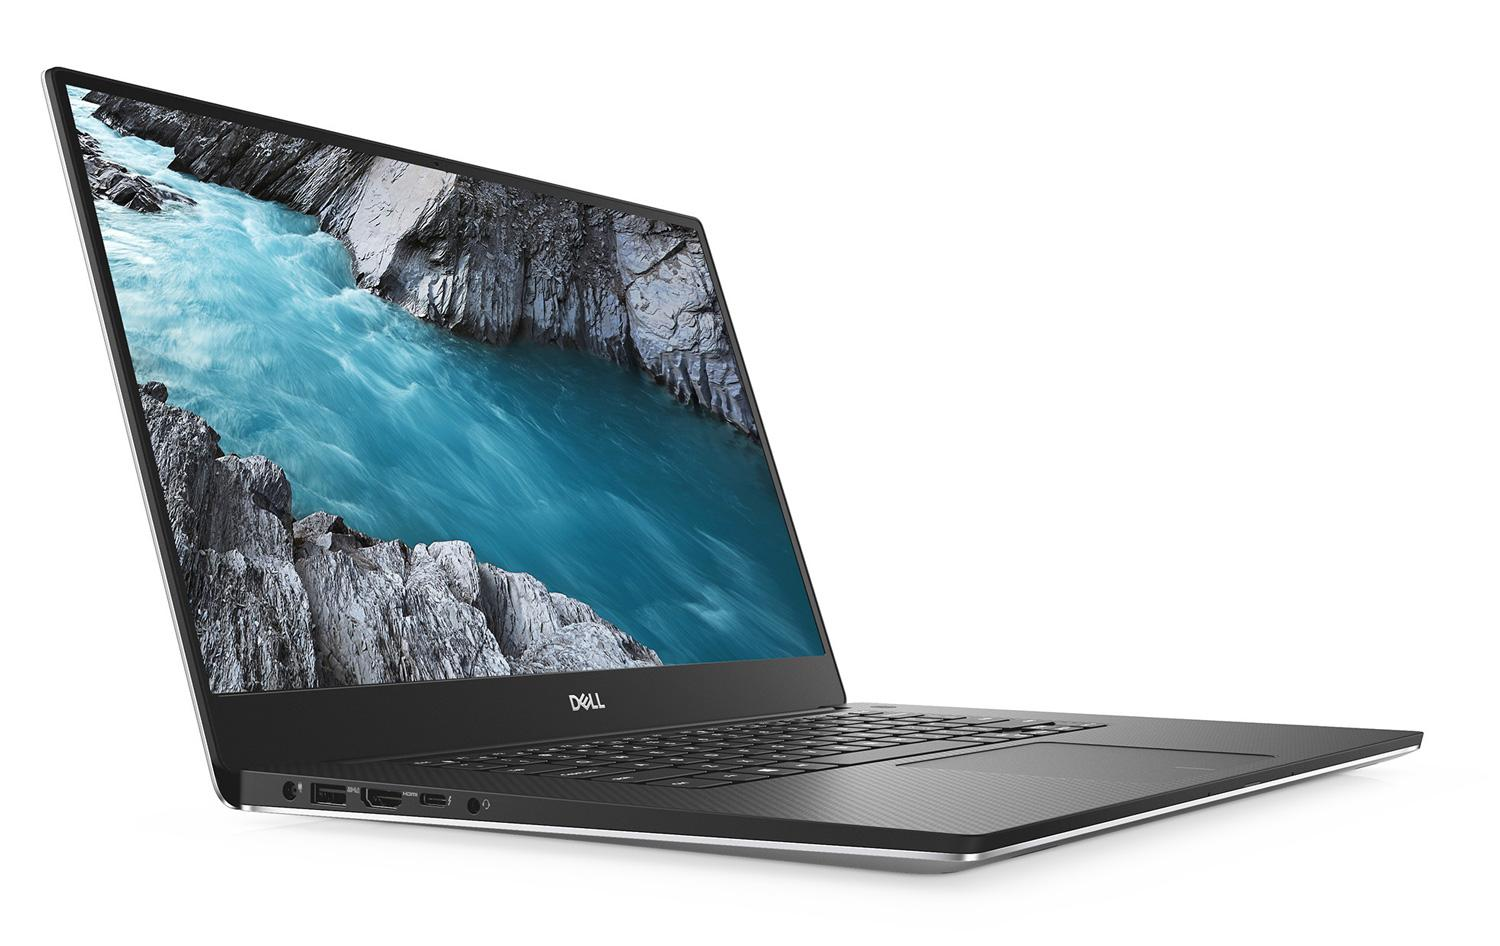 Image du PC portable Dell XPS 15 7590 (1680) - OLED 4K, GTX 1650, SSD 1 To